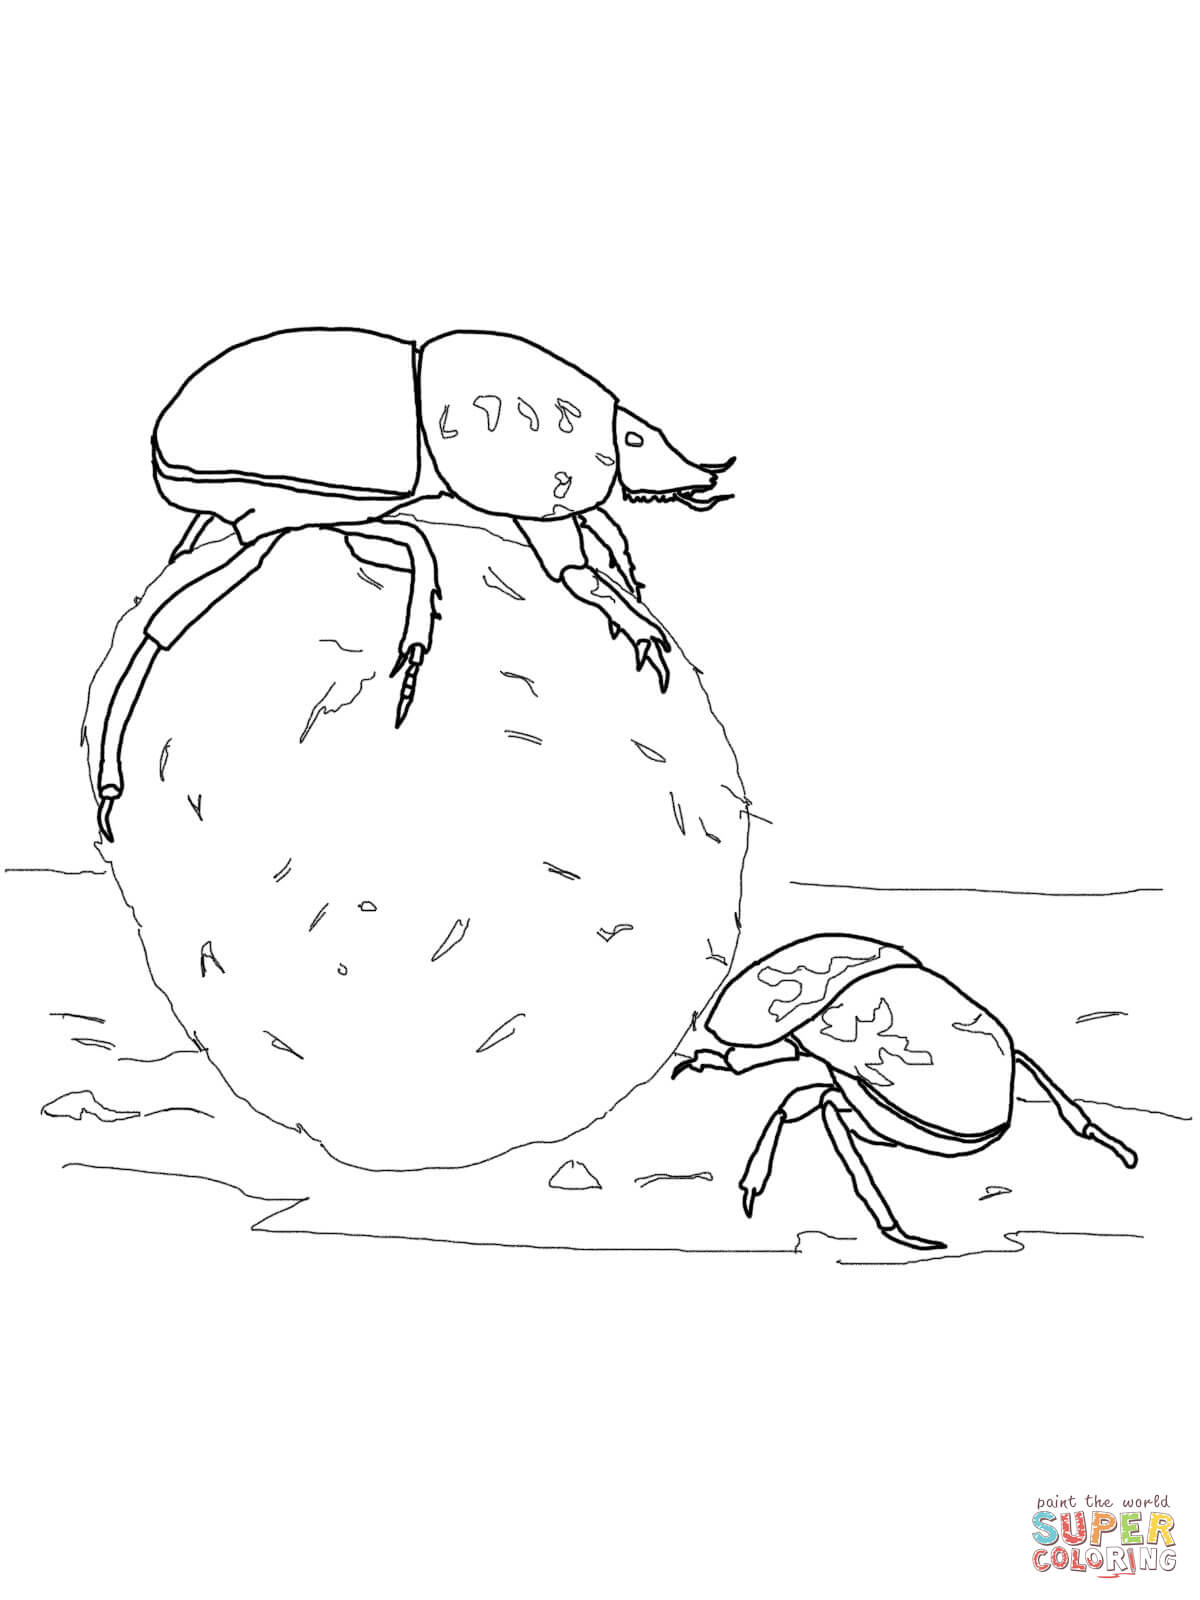 Dung Beetle coloring #10, Download drawings